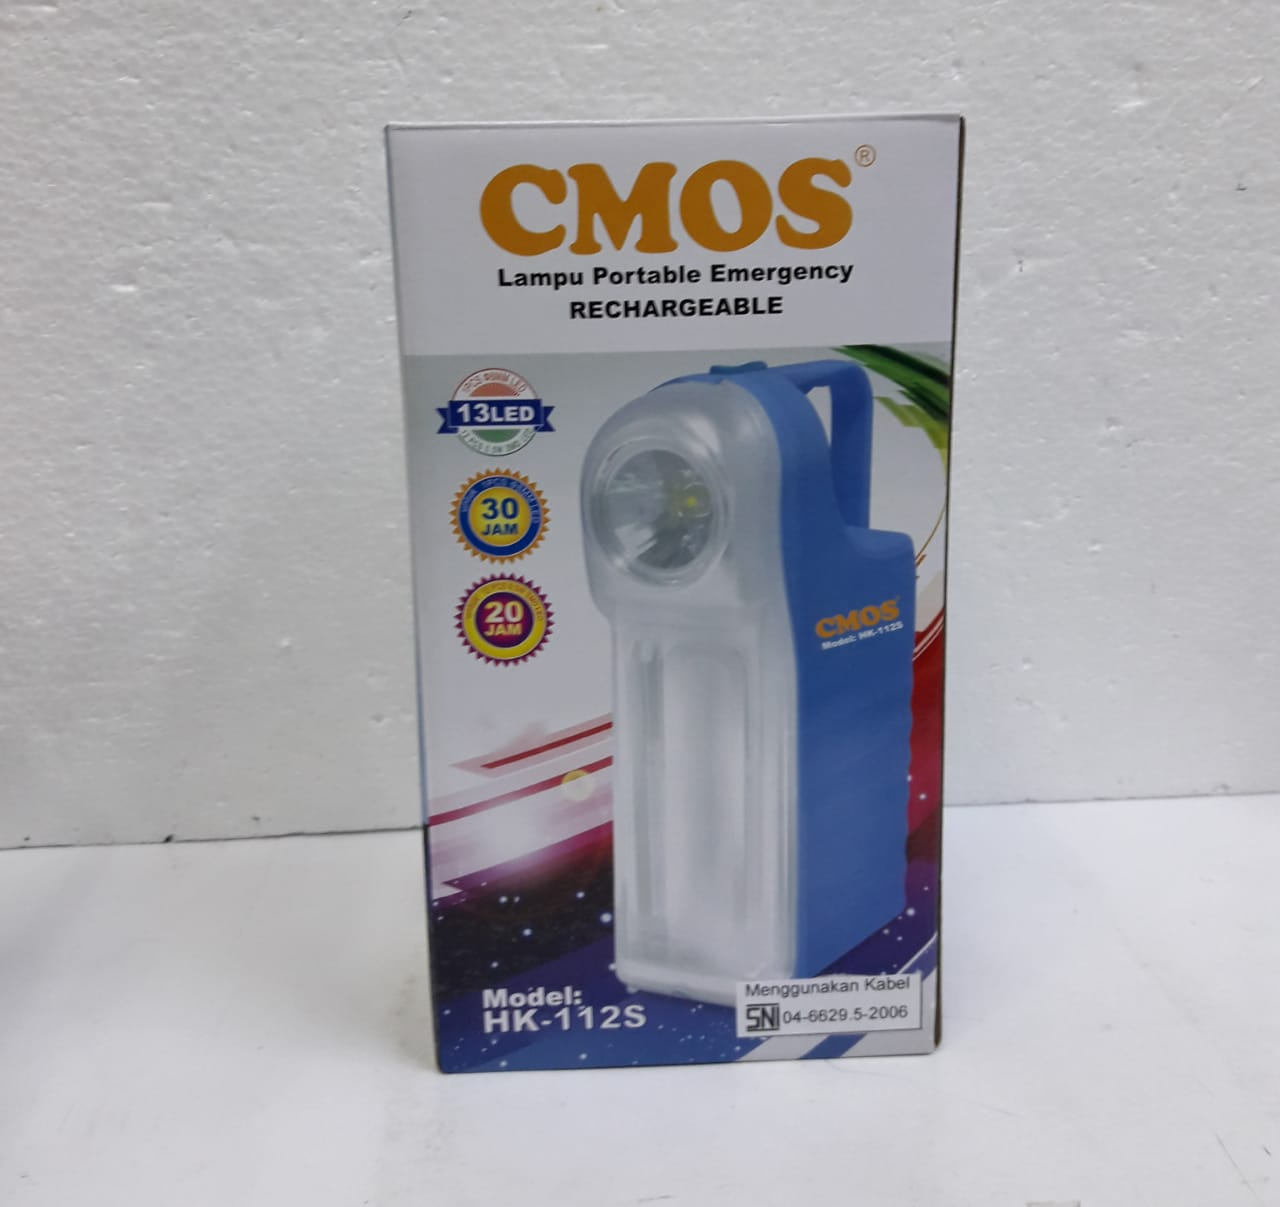 CMOS LAMPU PORTABLE EMERGENCY RECHARGEABLE HK - 112 S